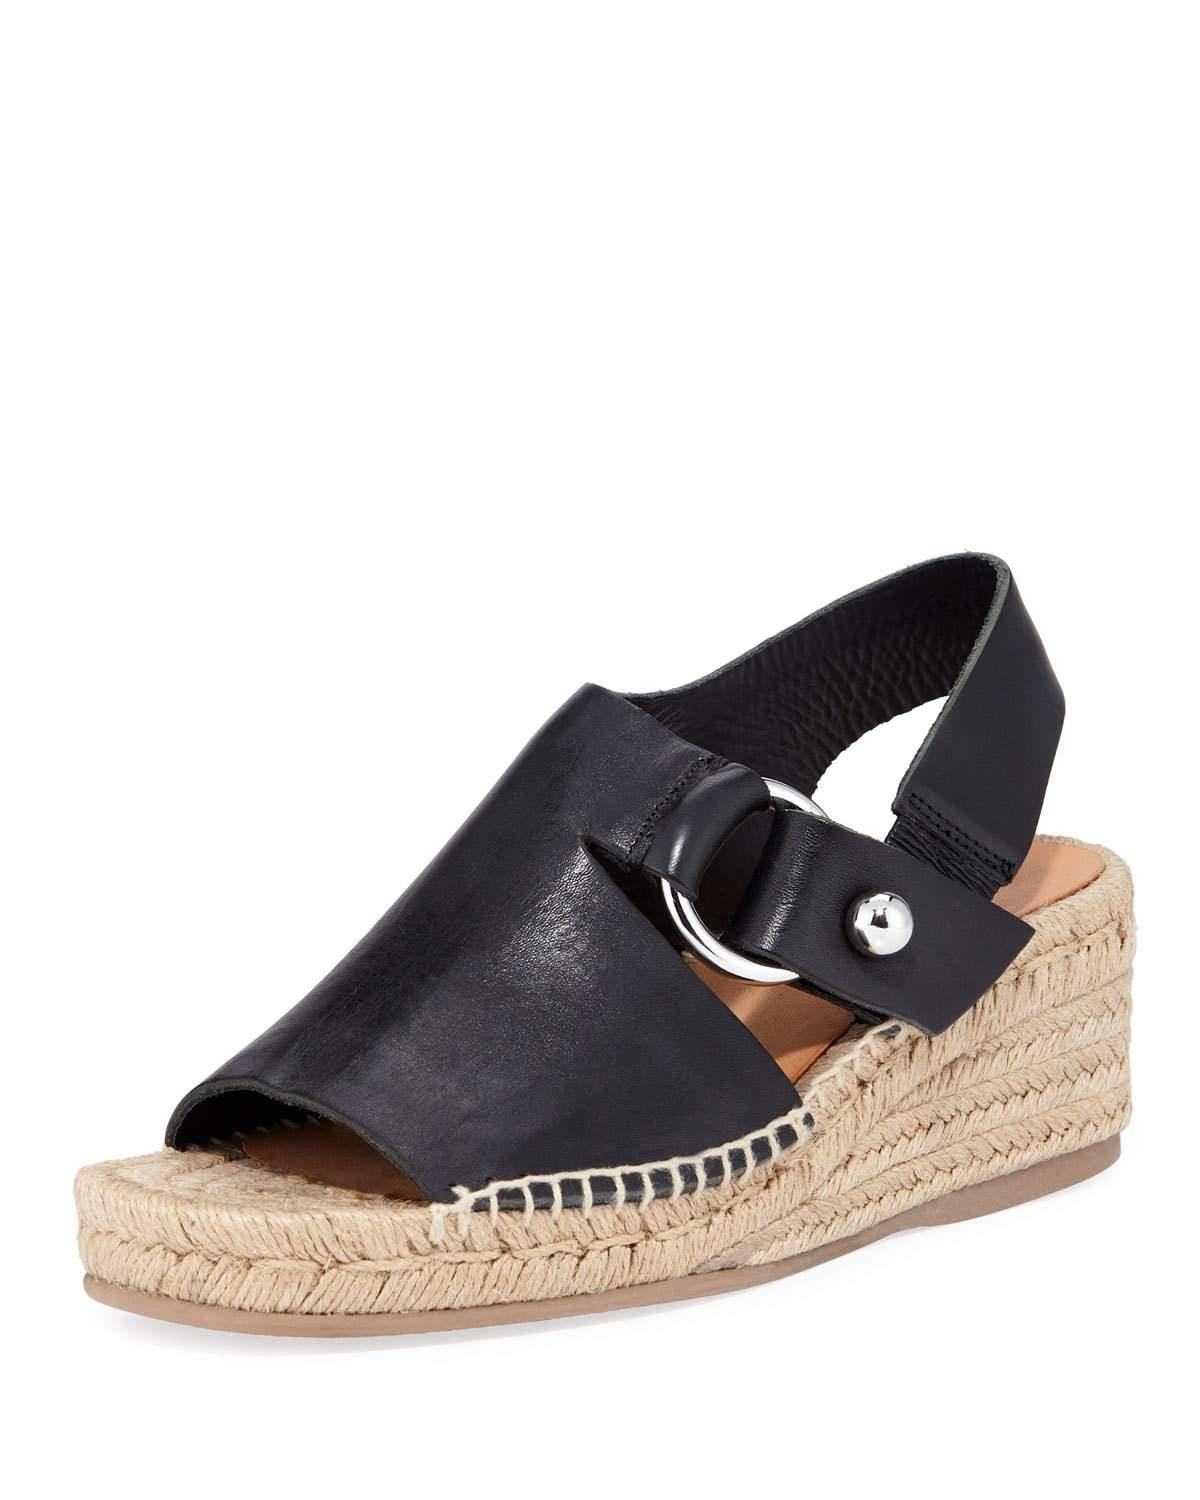 076b1dece79 Lyst - Rag   Bone Arc Leather Espadrille Wedge Sandals in Black